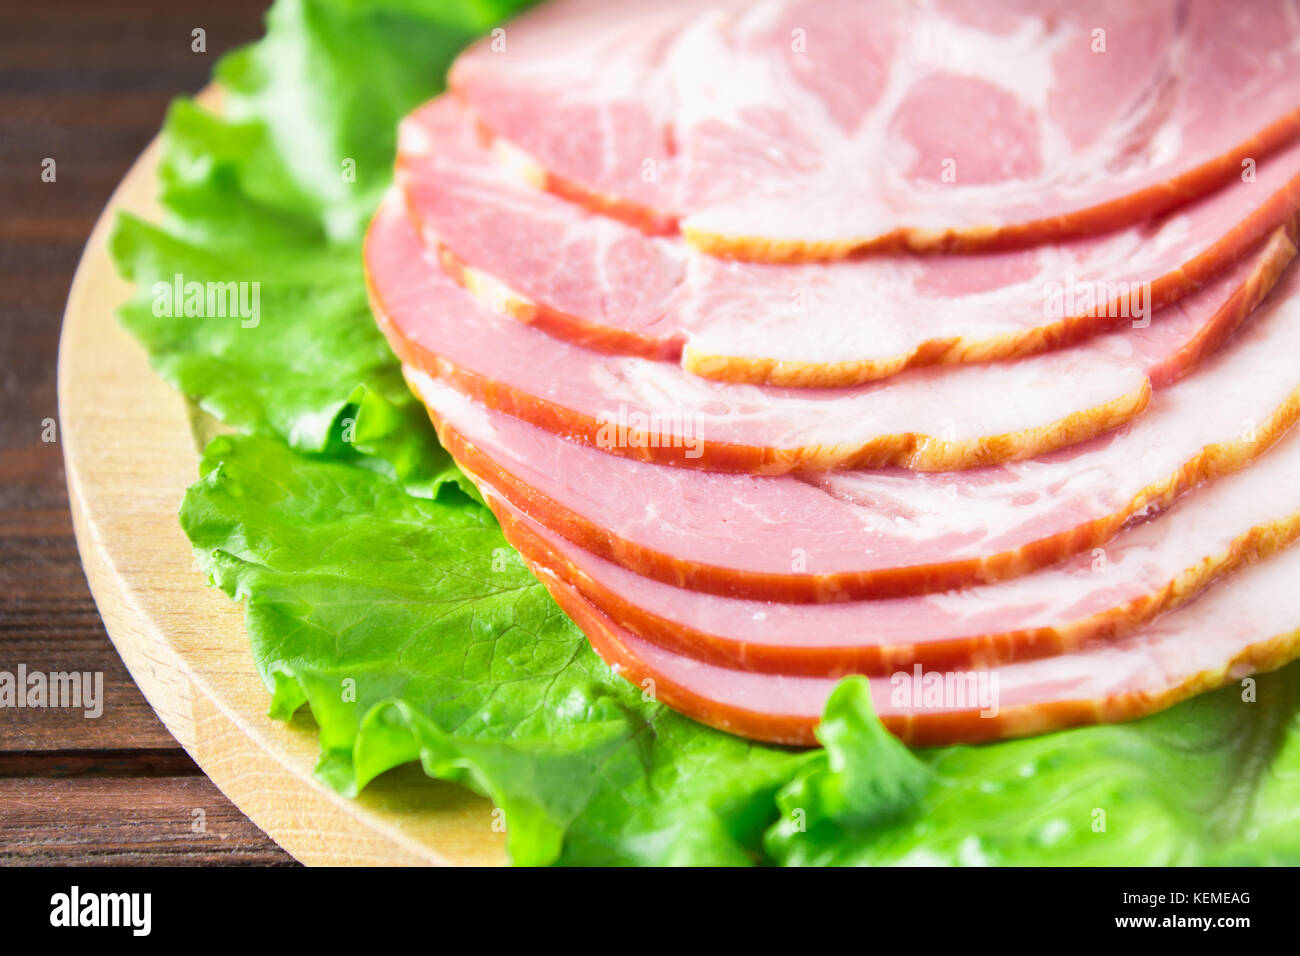 Sliced ham with fresh green lettuce leaves on a round cutting board. Meat products on a brown wooden table. - Stock Image